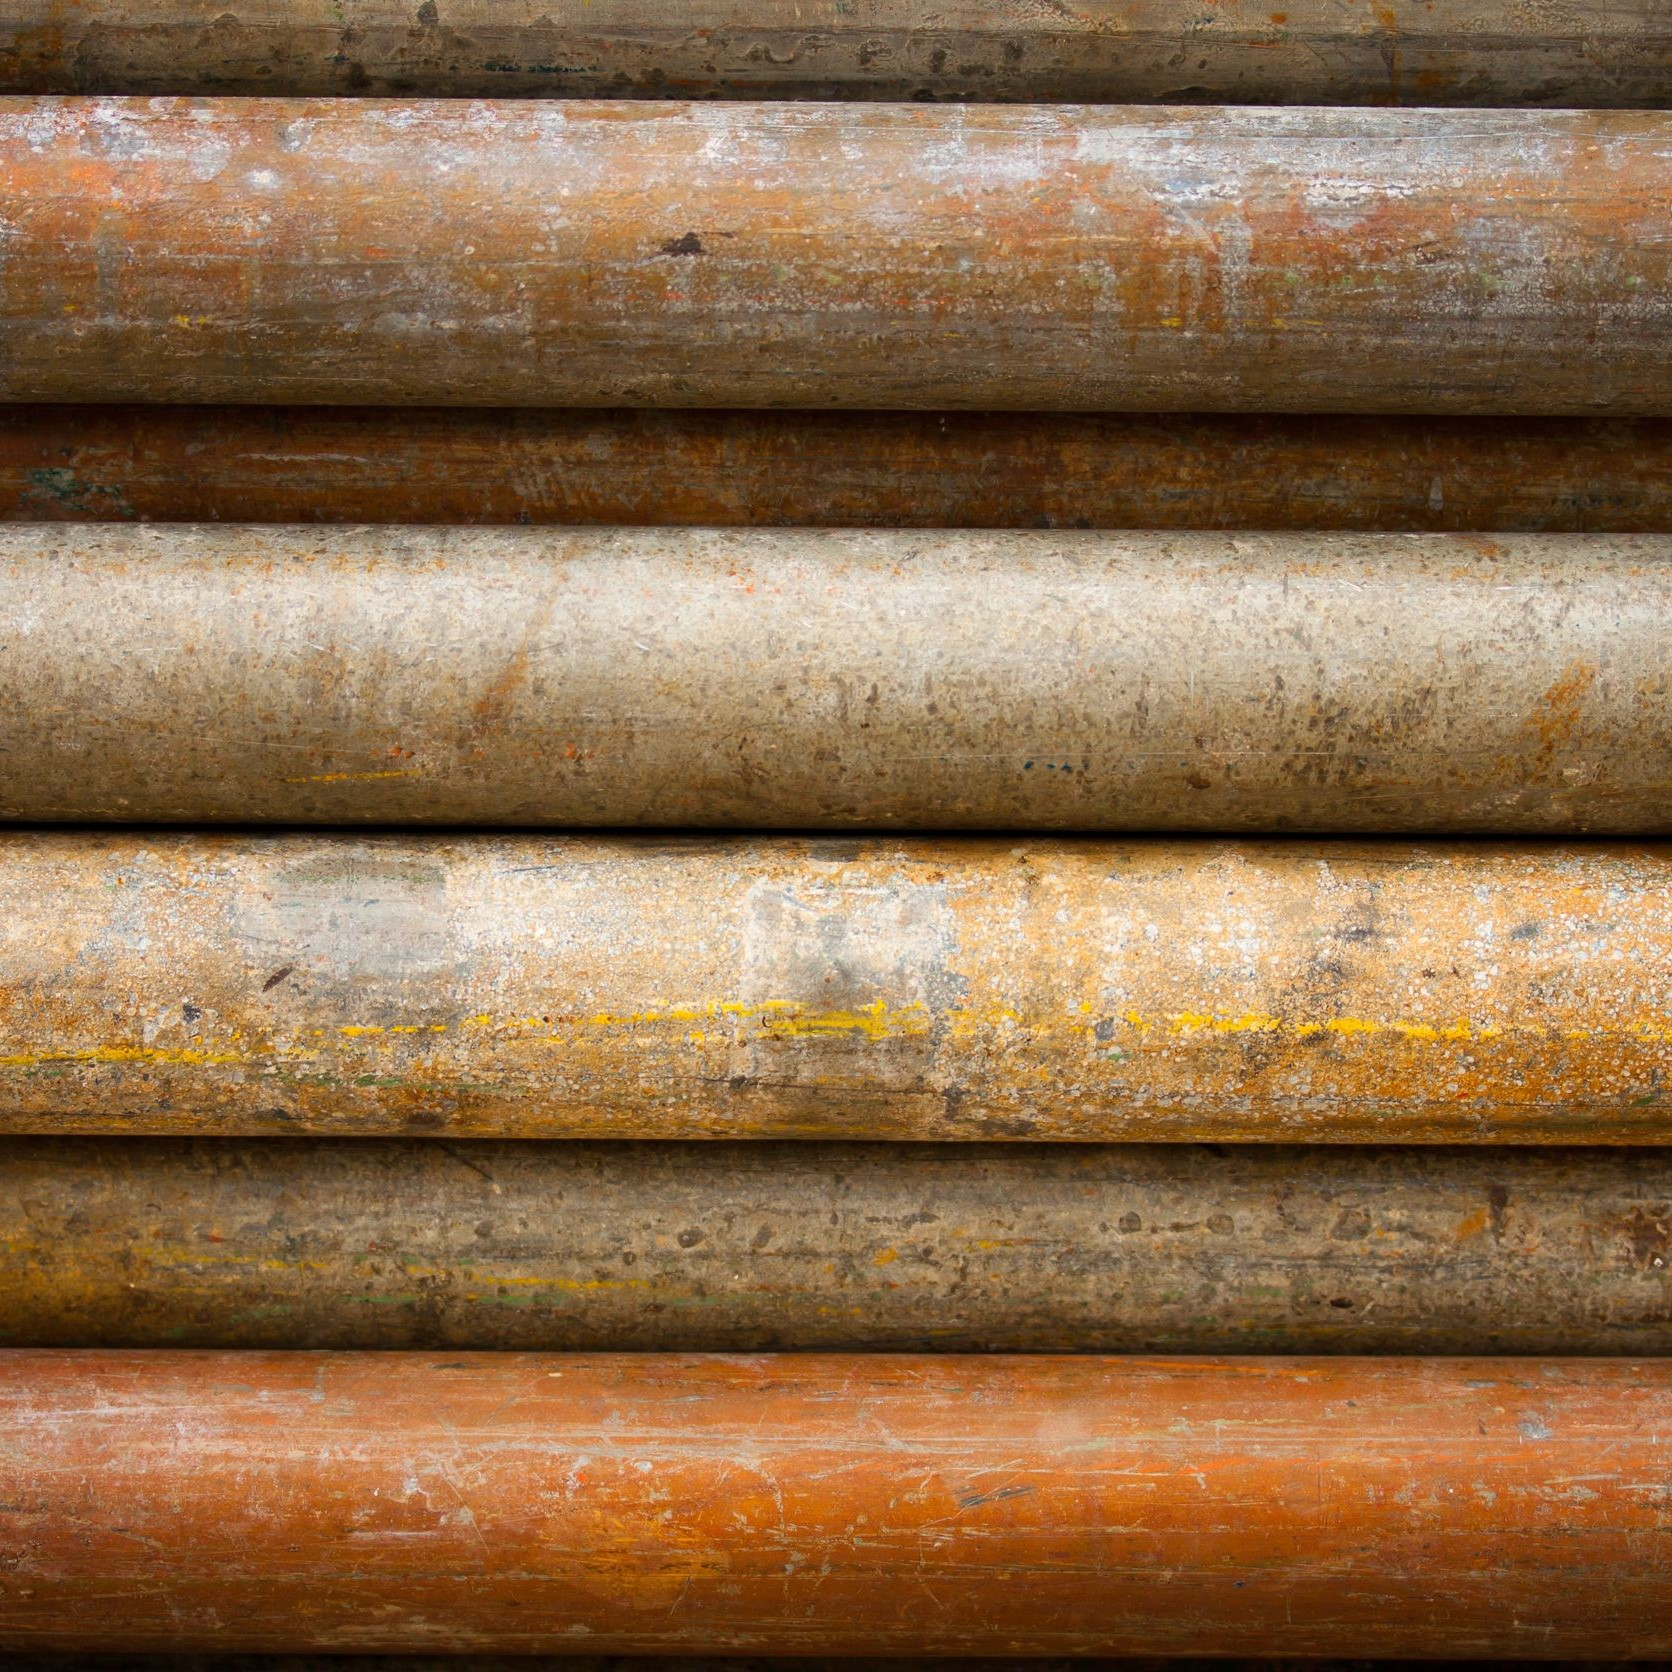 An assortment of rusty pipes.